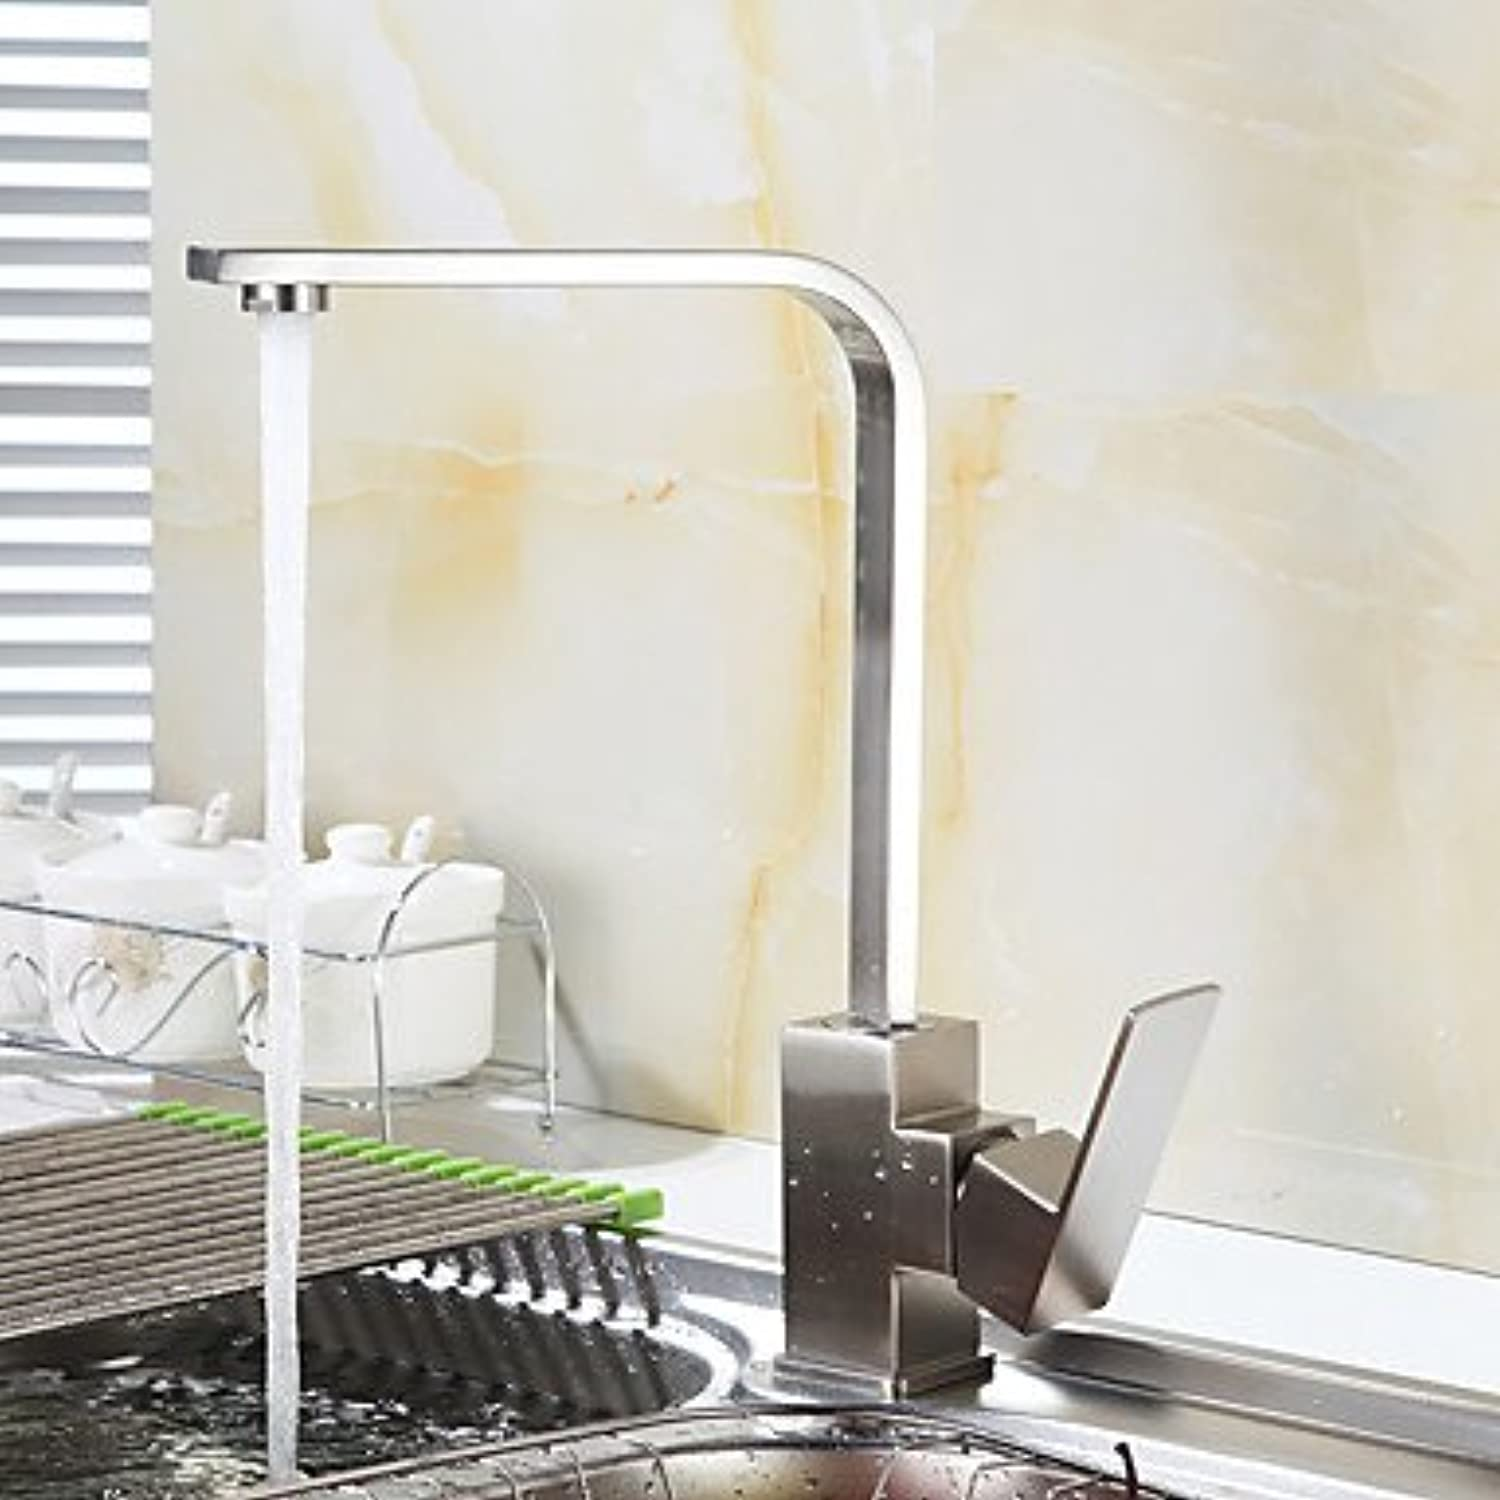 ZYT Contemporary Standard Spout Vessel Widespread with Ceramic Valve Single Handle One Hole for Nickel Brushed , Kitchen faucet